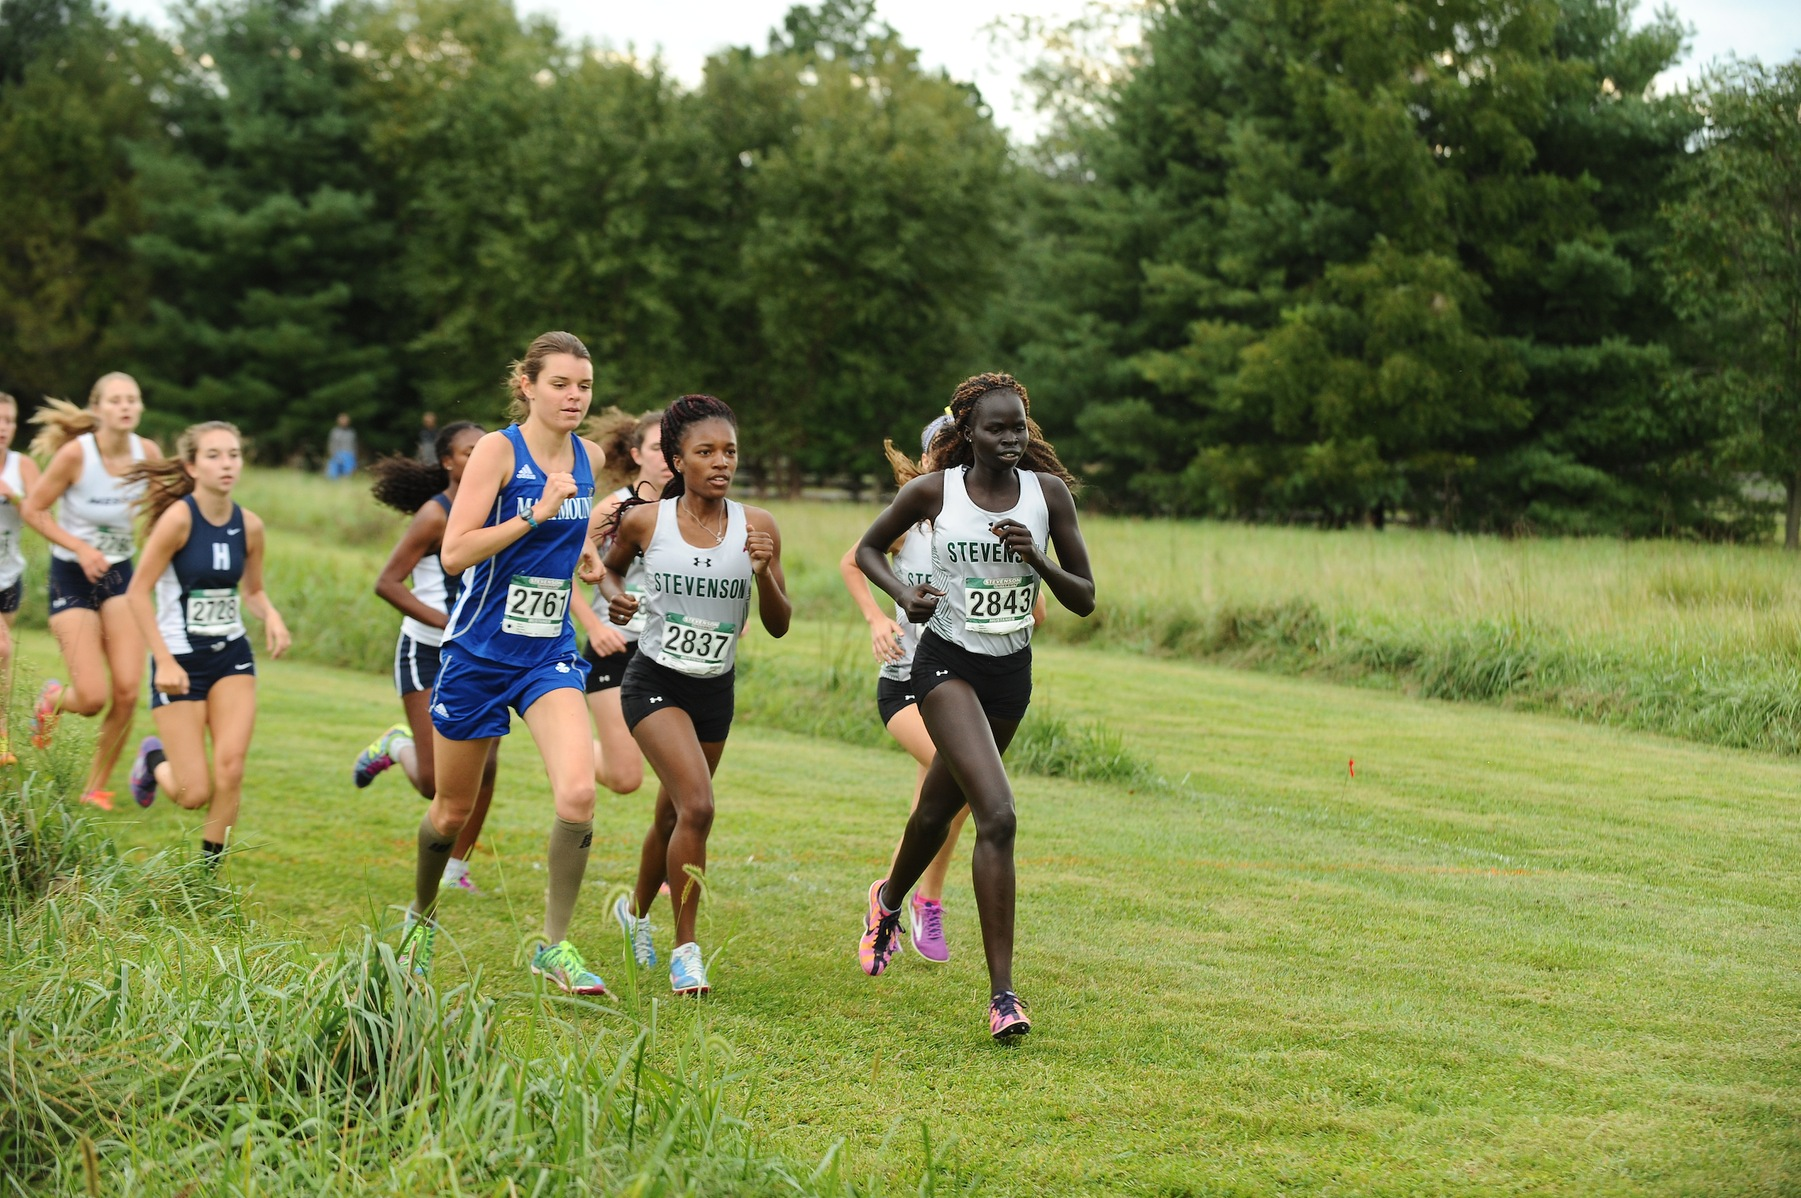 Sabo Leads Women's Cross Country to First Place at Mustang Stampede